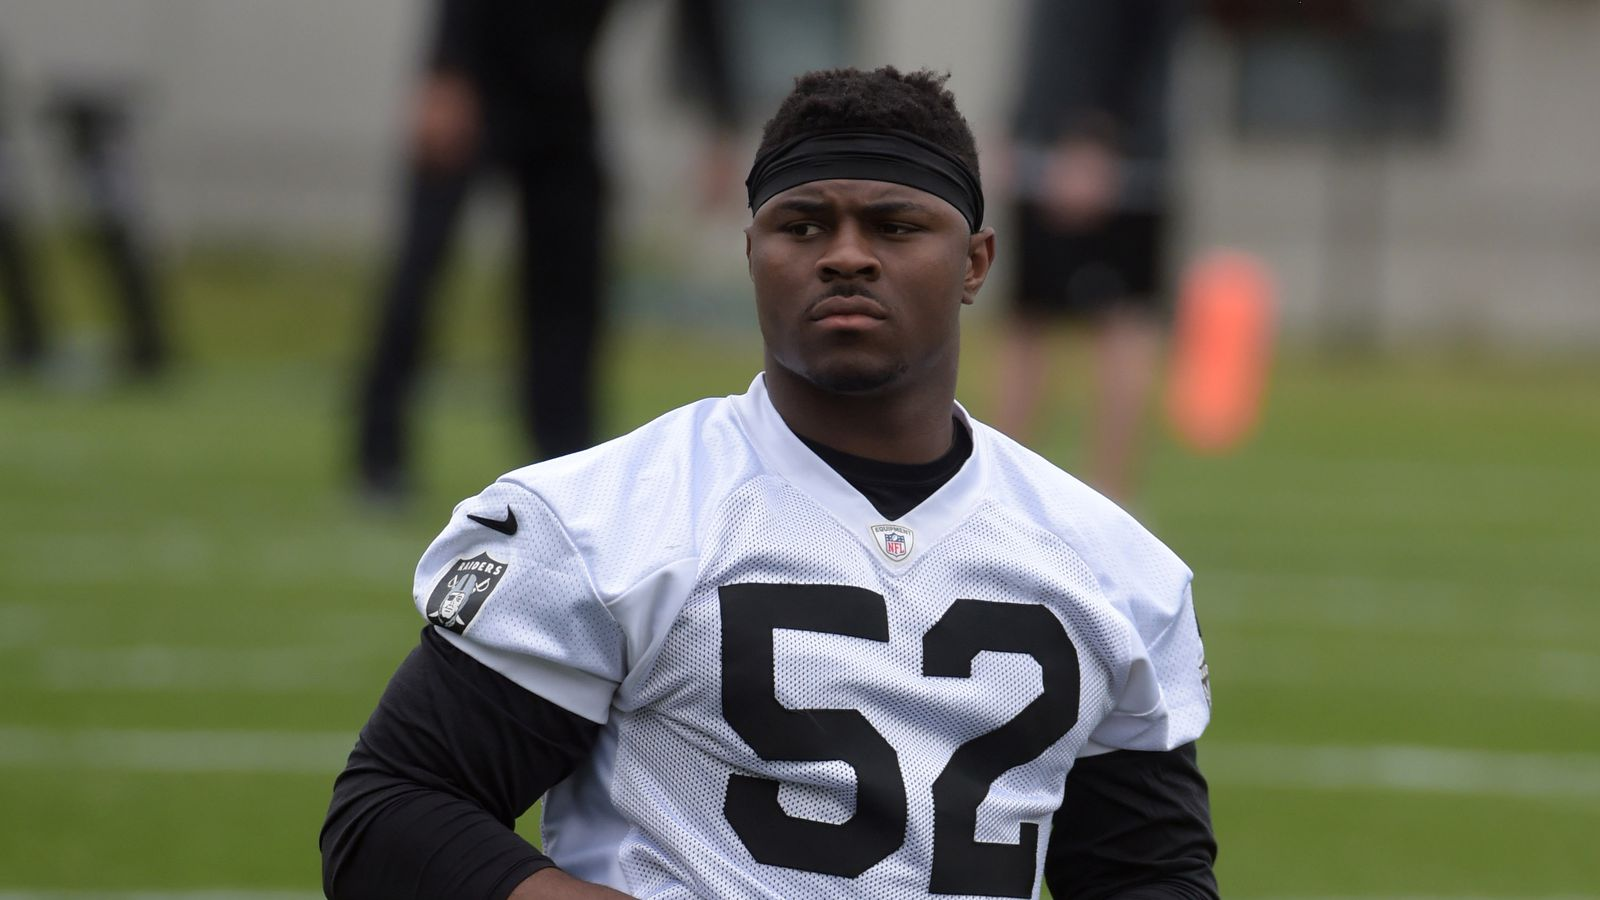 Oakland Raiders star Khalil Mack remains away from offseason activities while looking for a new contract Heres why the Raiders need to pony up the cash